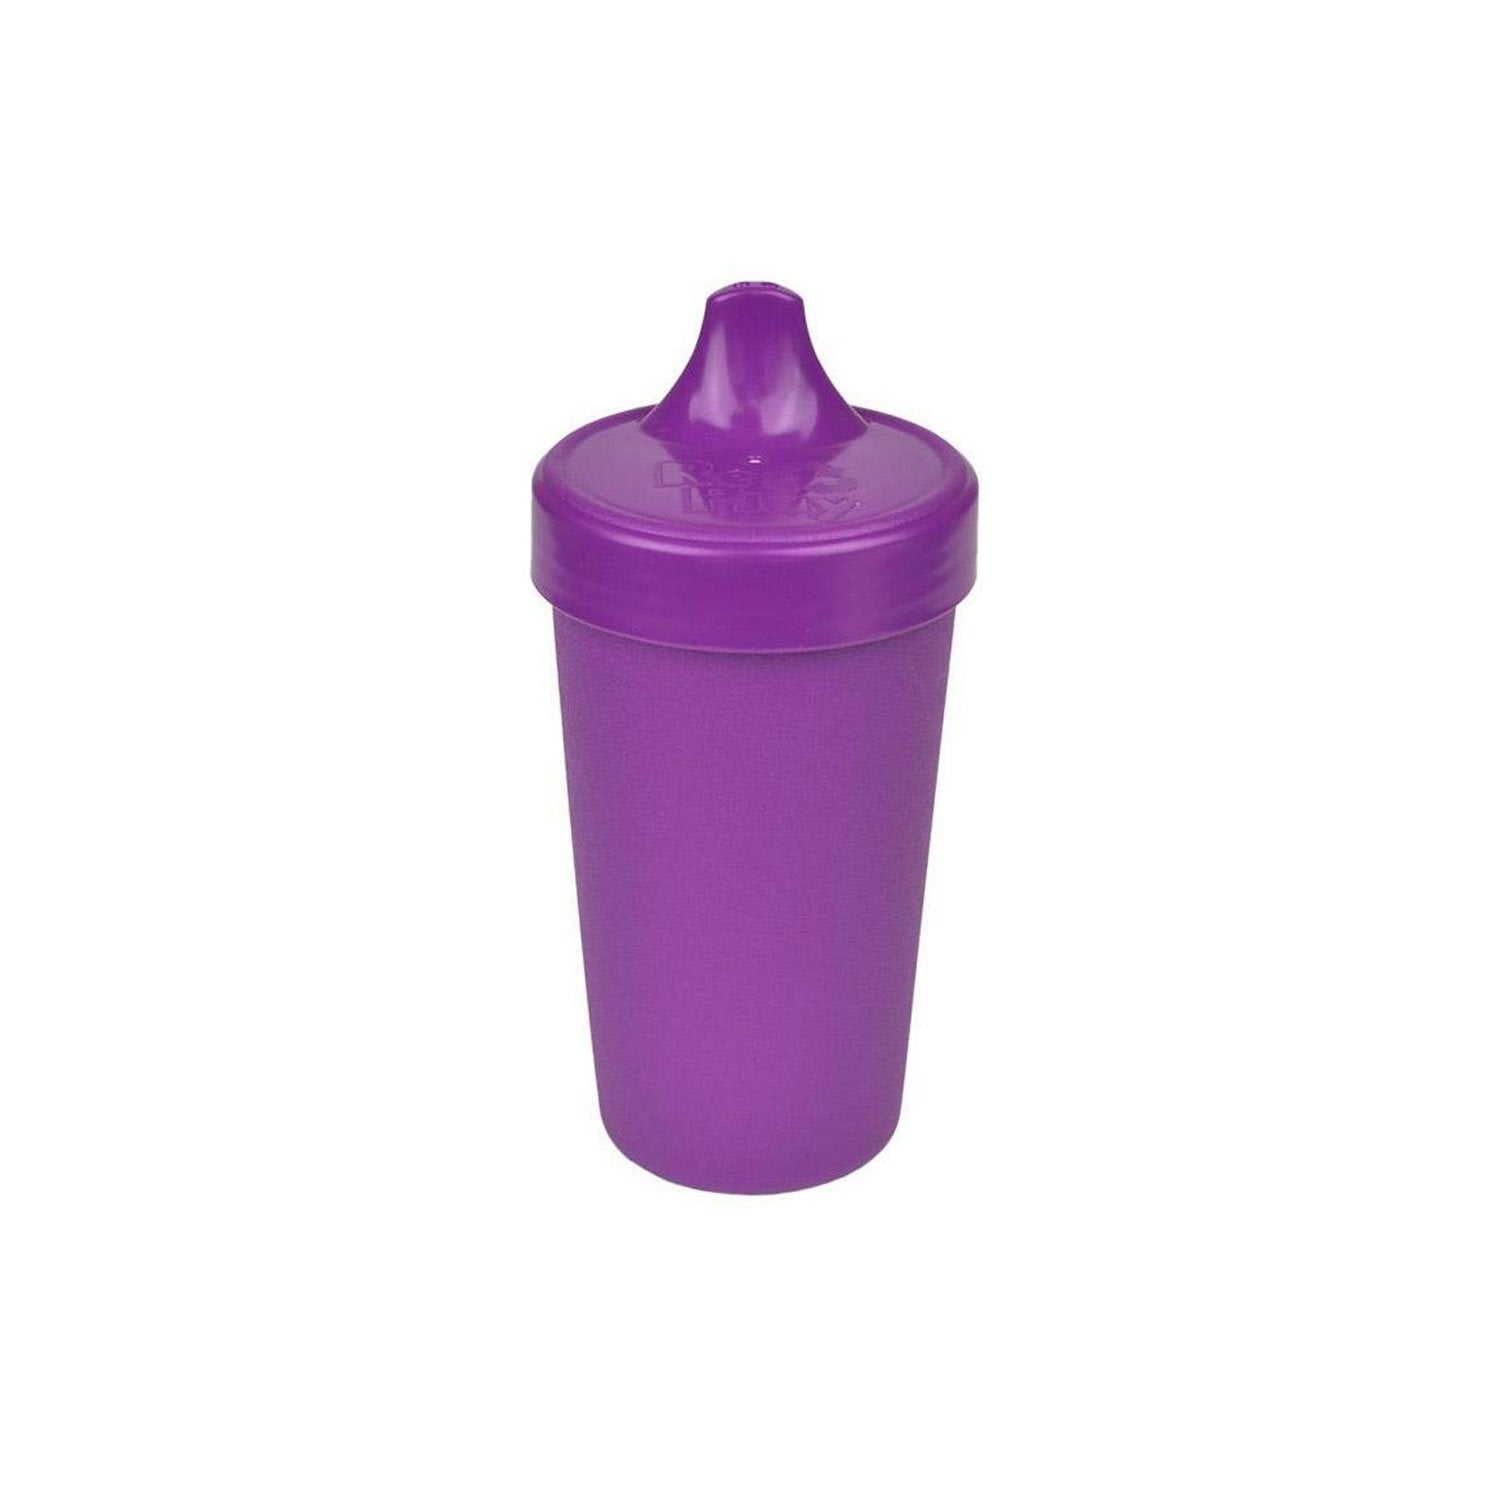 Replay Sippy Cup Replay Sippy Cups Amethyst at Little Earth Nest Eco Shop